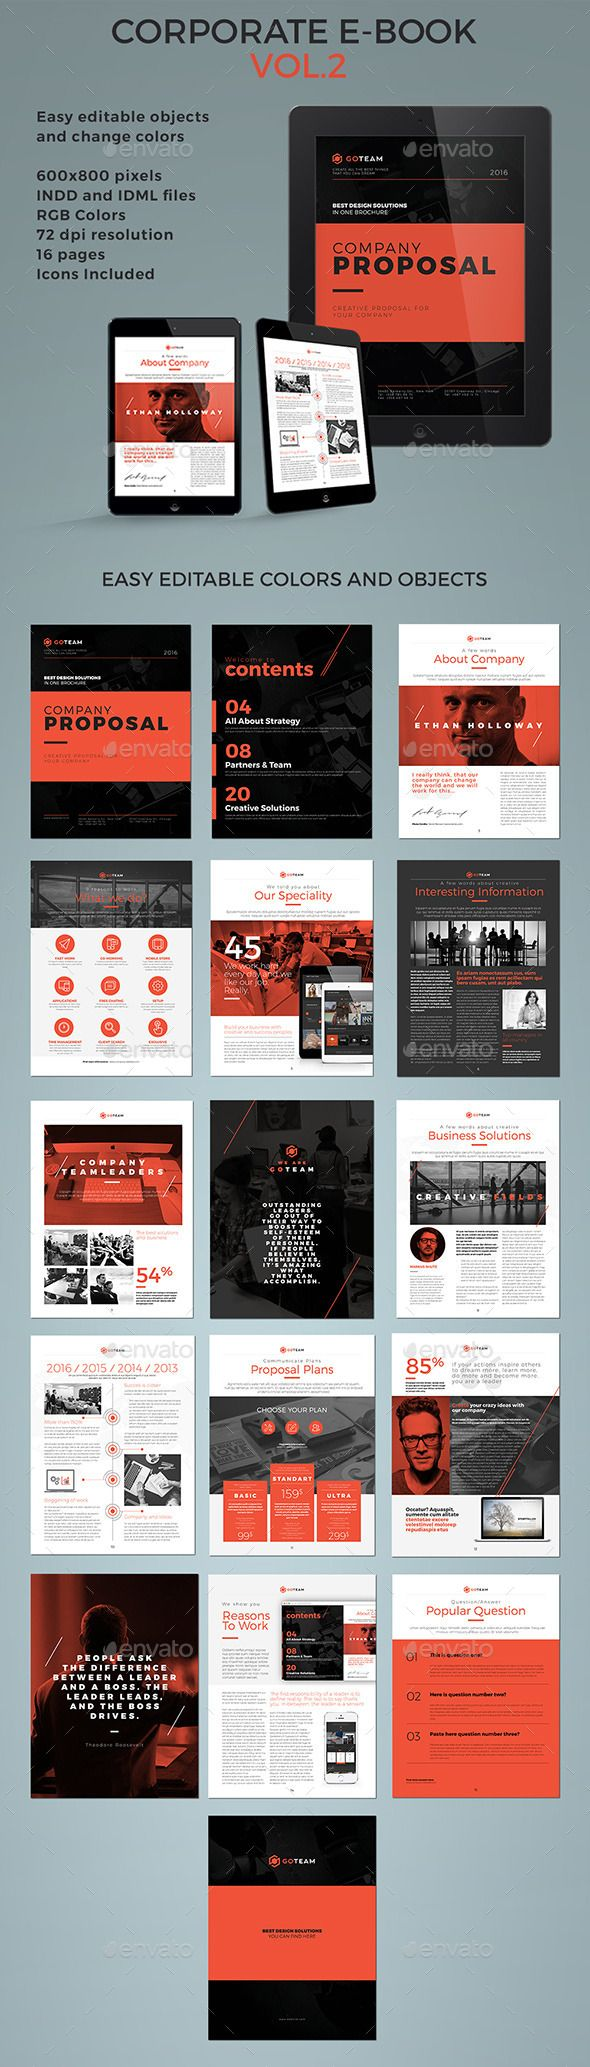 Delighted 1 2 3 Nu Kapitel Resume Thin 10 Minute Resume Rectangular 10 Steps To Creating A Resume 16 Year Old Resumes Old 2 Round Label Template Soft2014 Calendar Excel Template Proposal | Texts, 2! And Layout